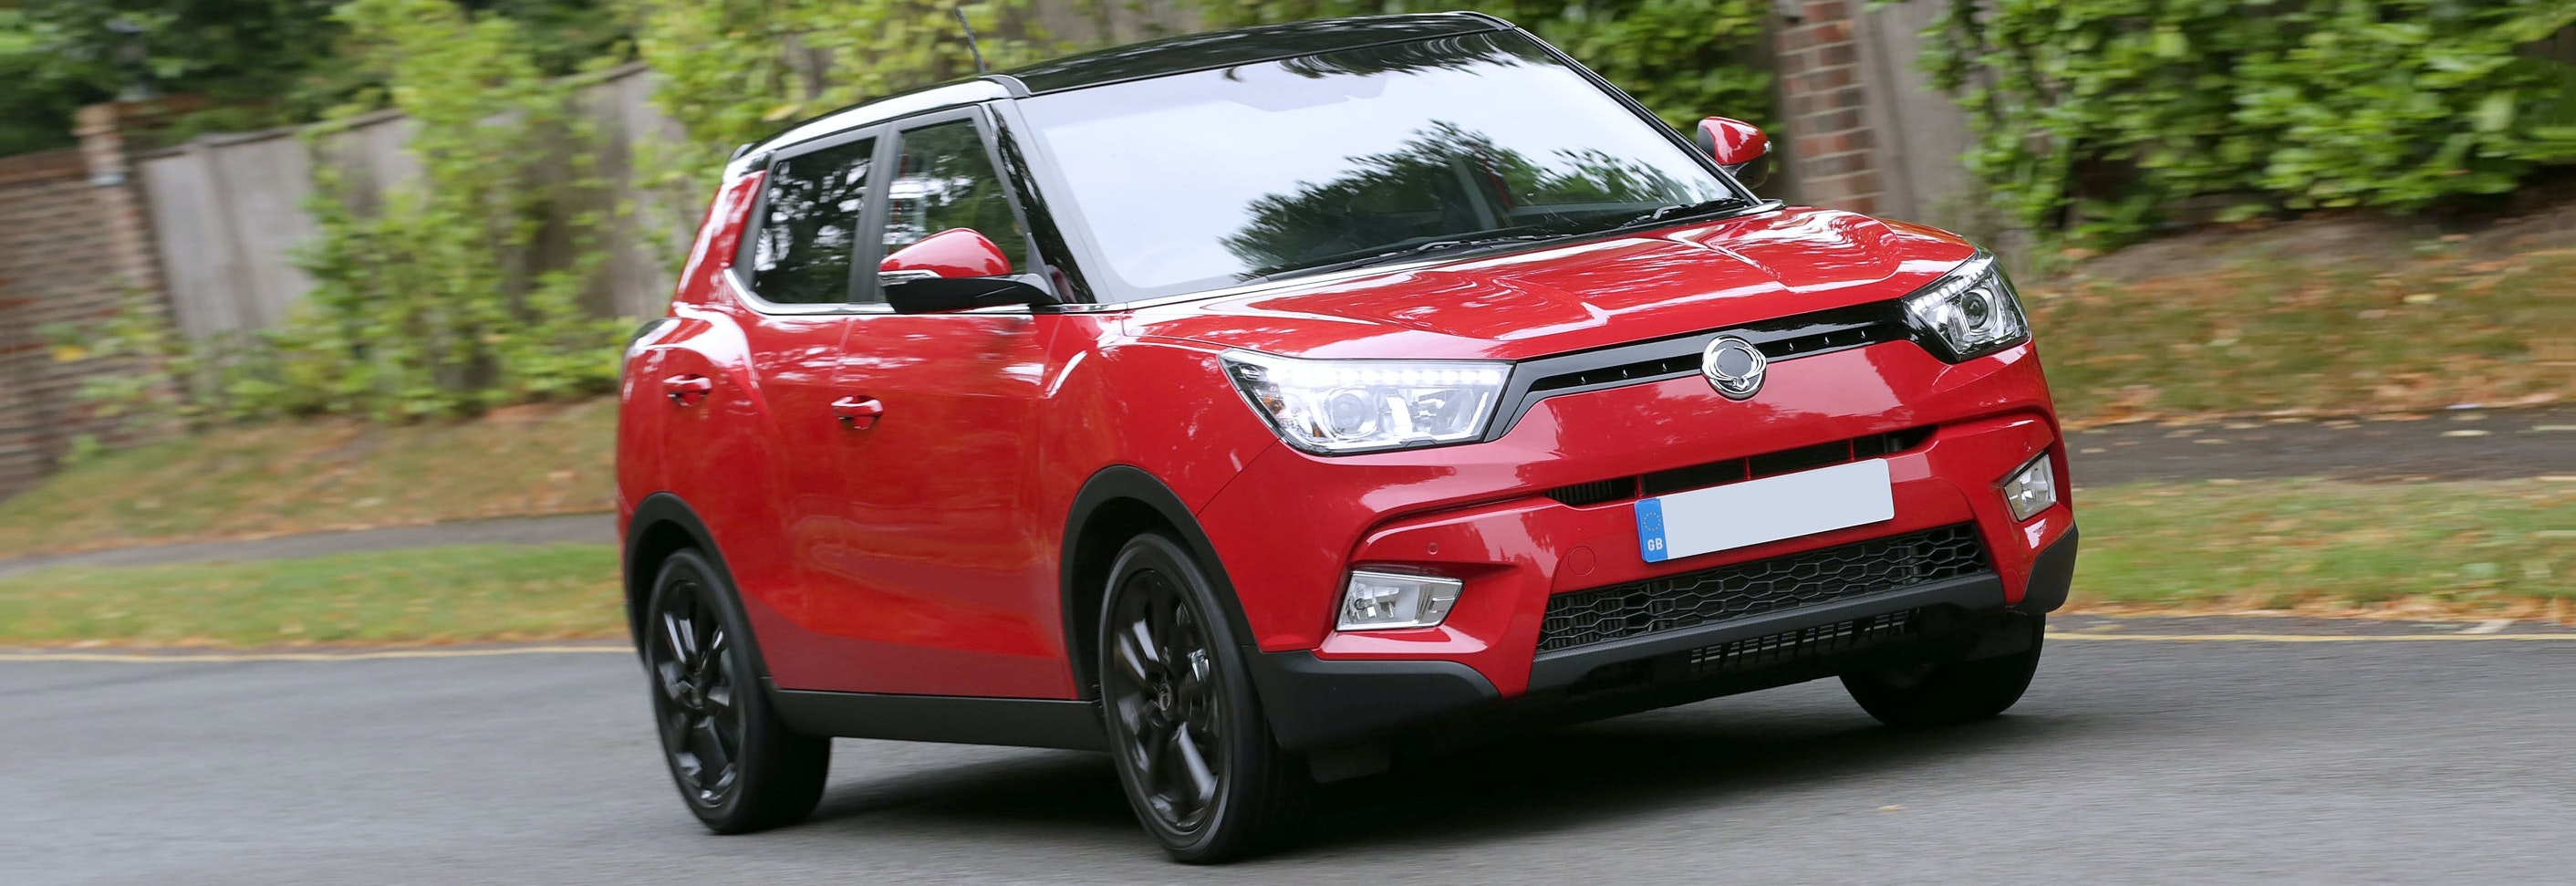 2018 ssangyong tivoli red driving front